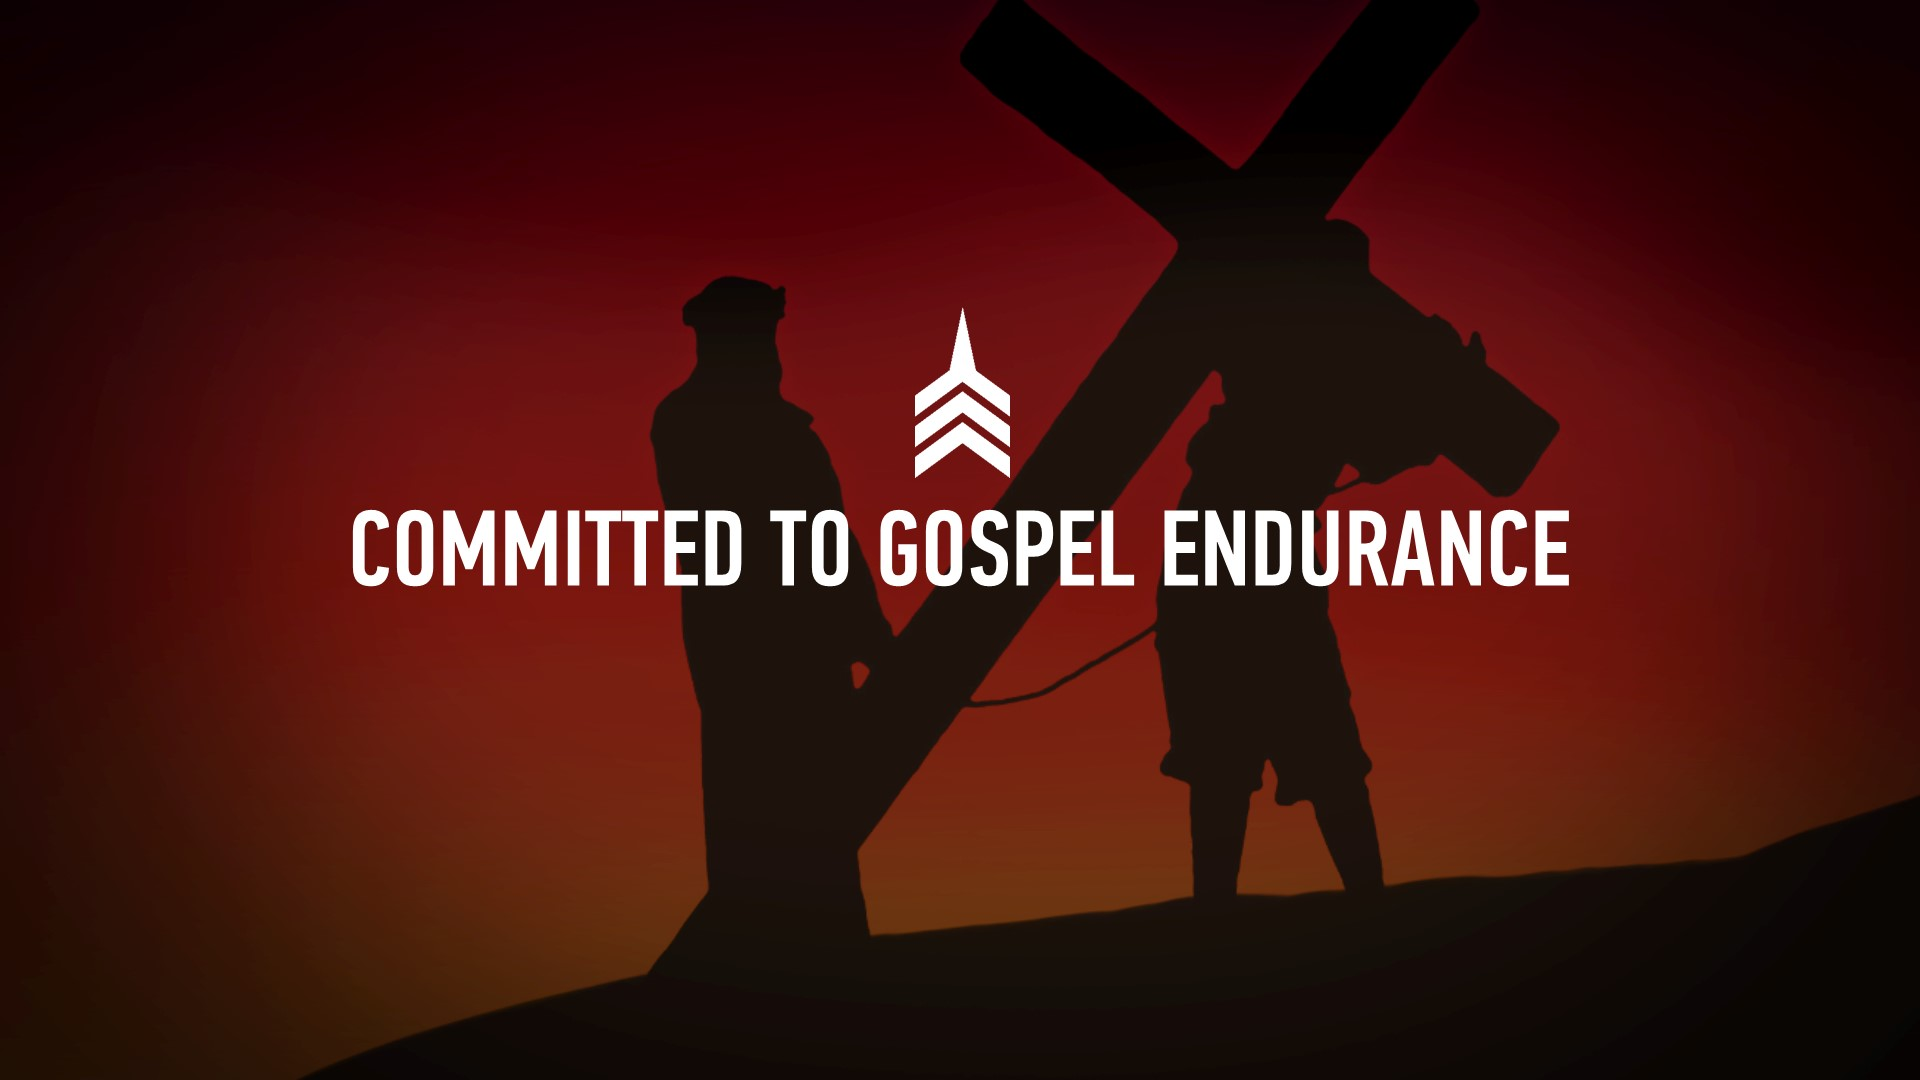 20190310 COMMITTED TO GOSPEL ENDURANCE.jpg